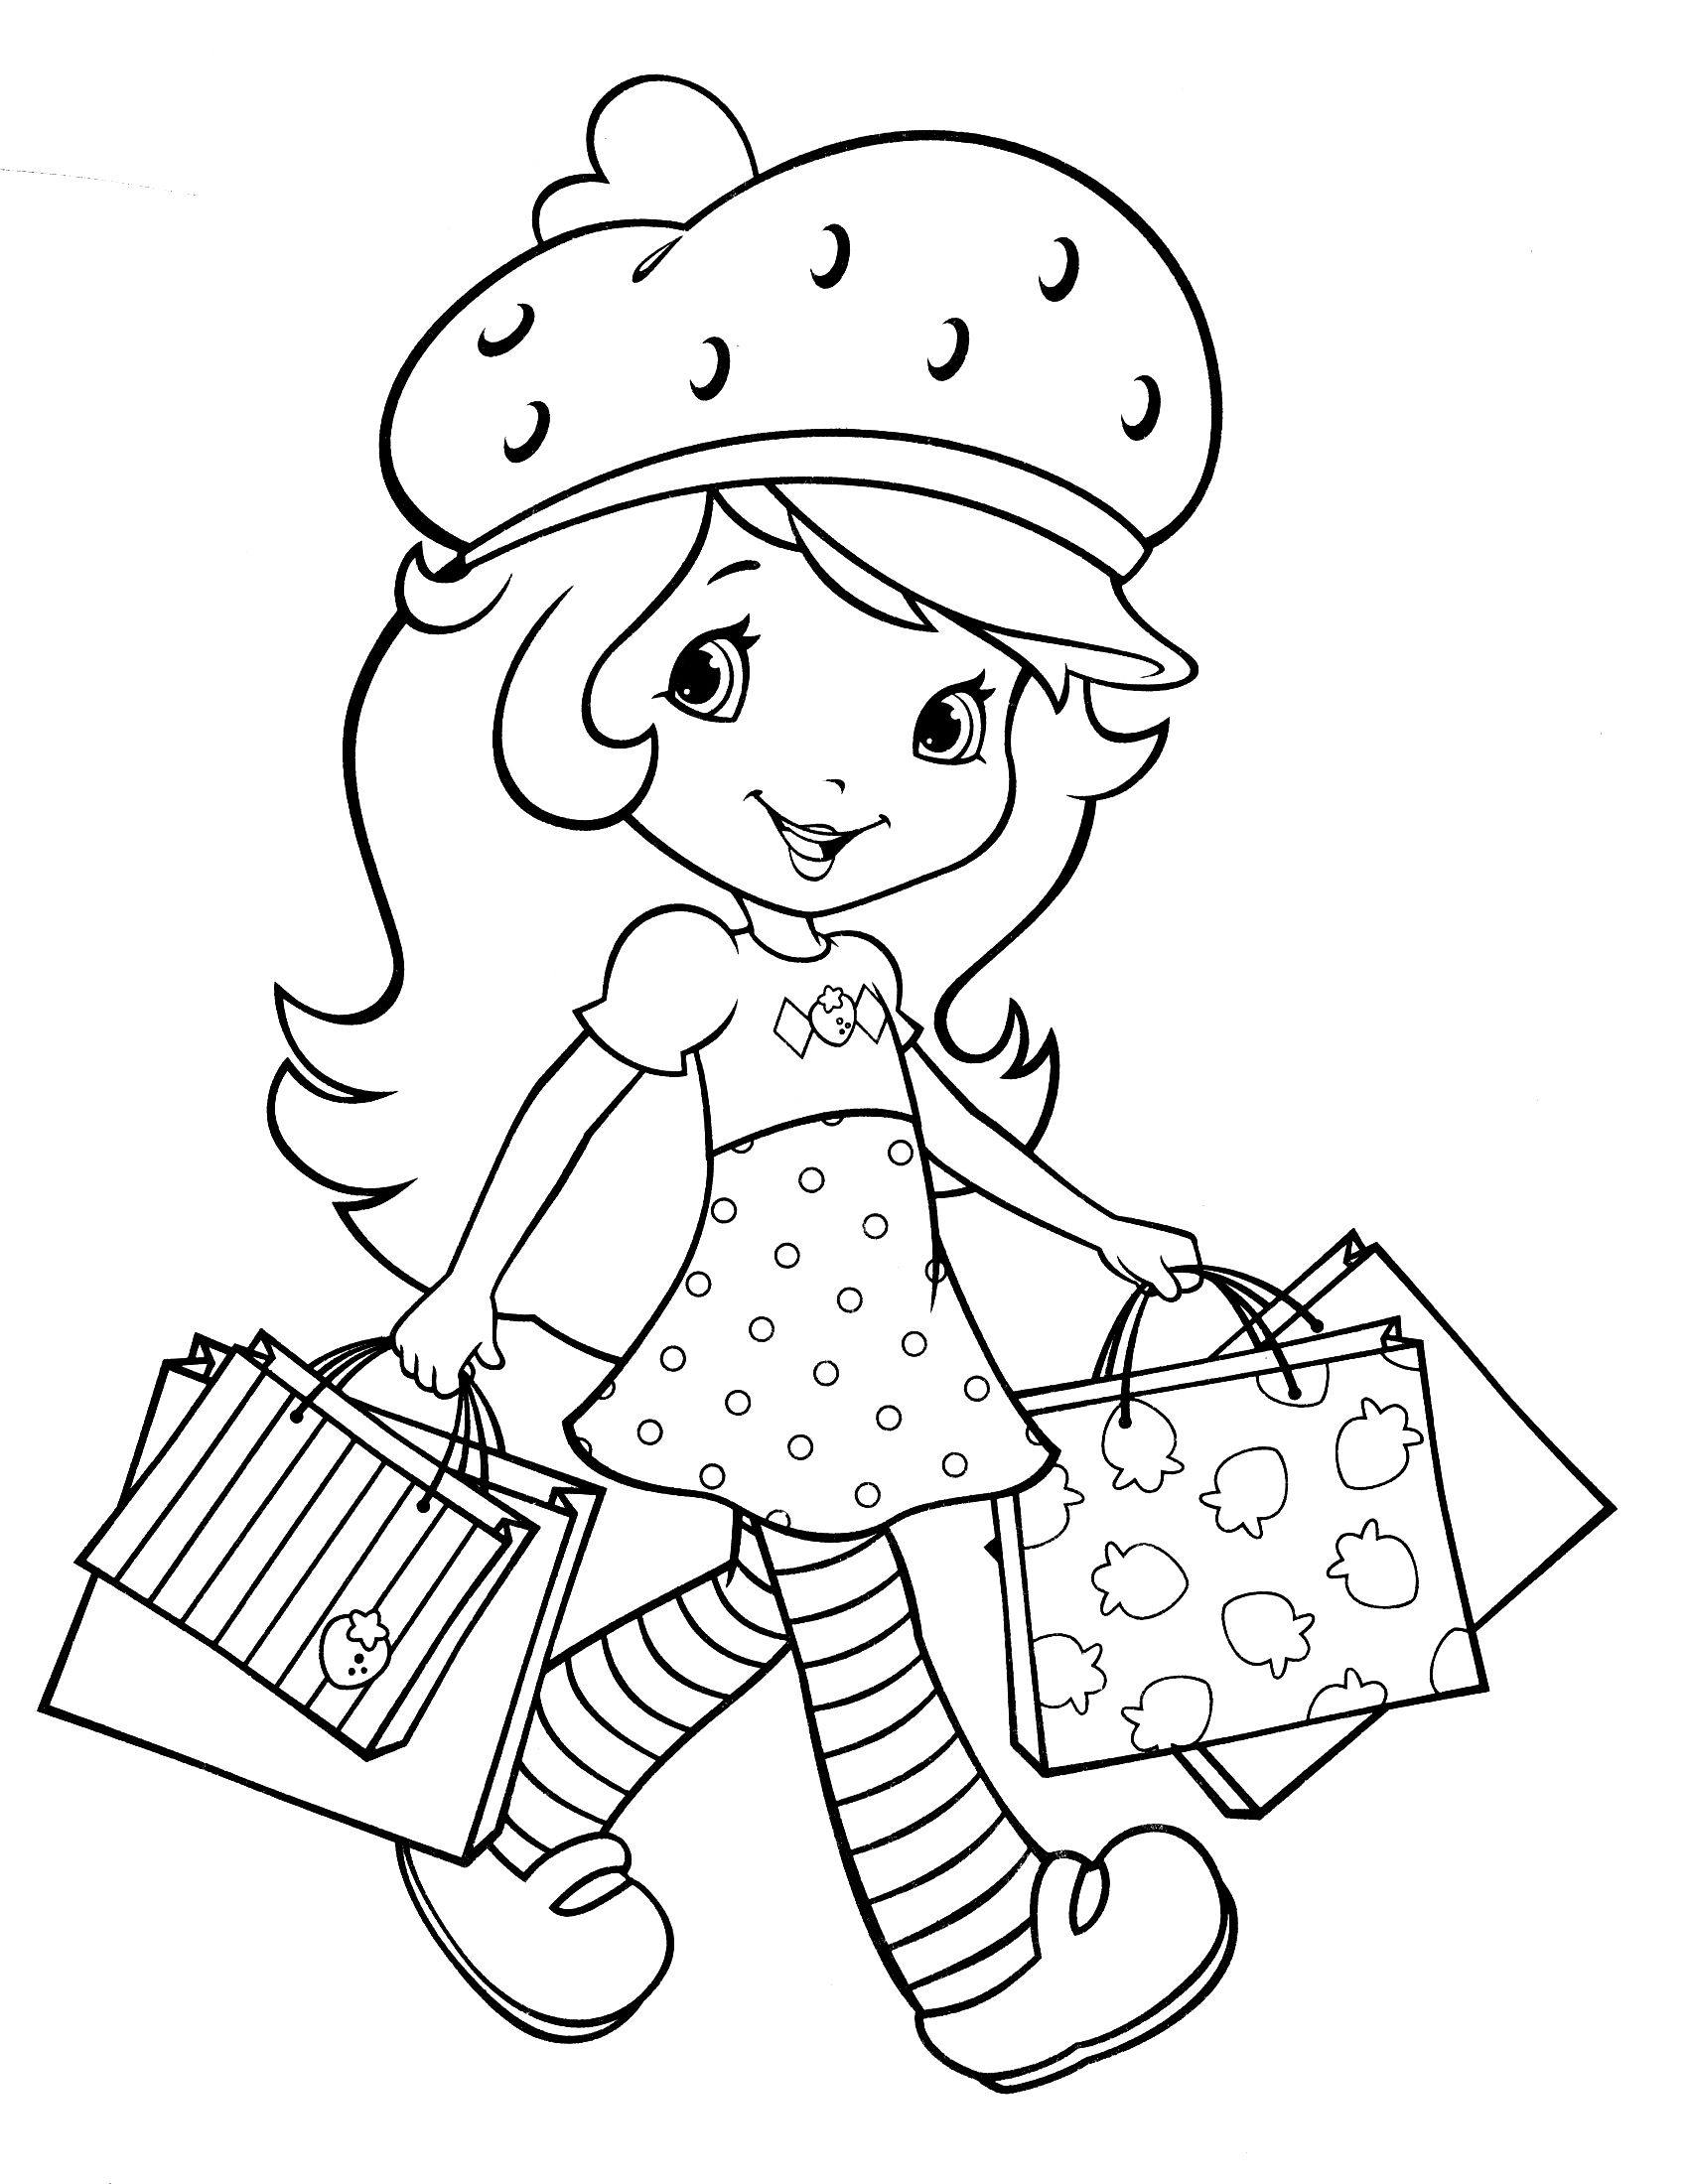 Strawberry Shortcake Coloring Page | Kids | Strawberry